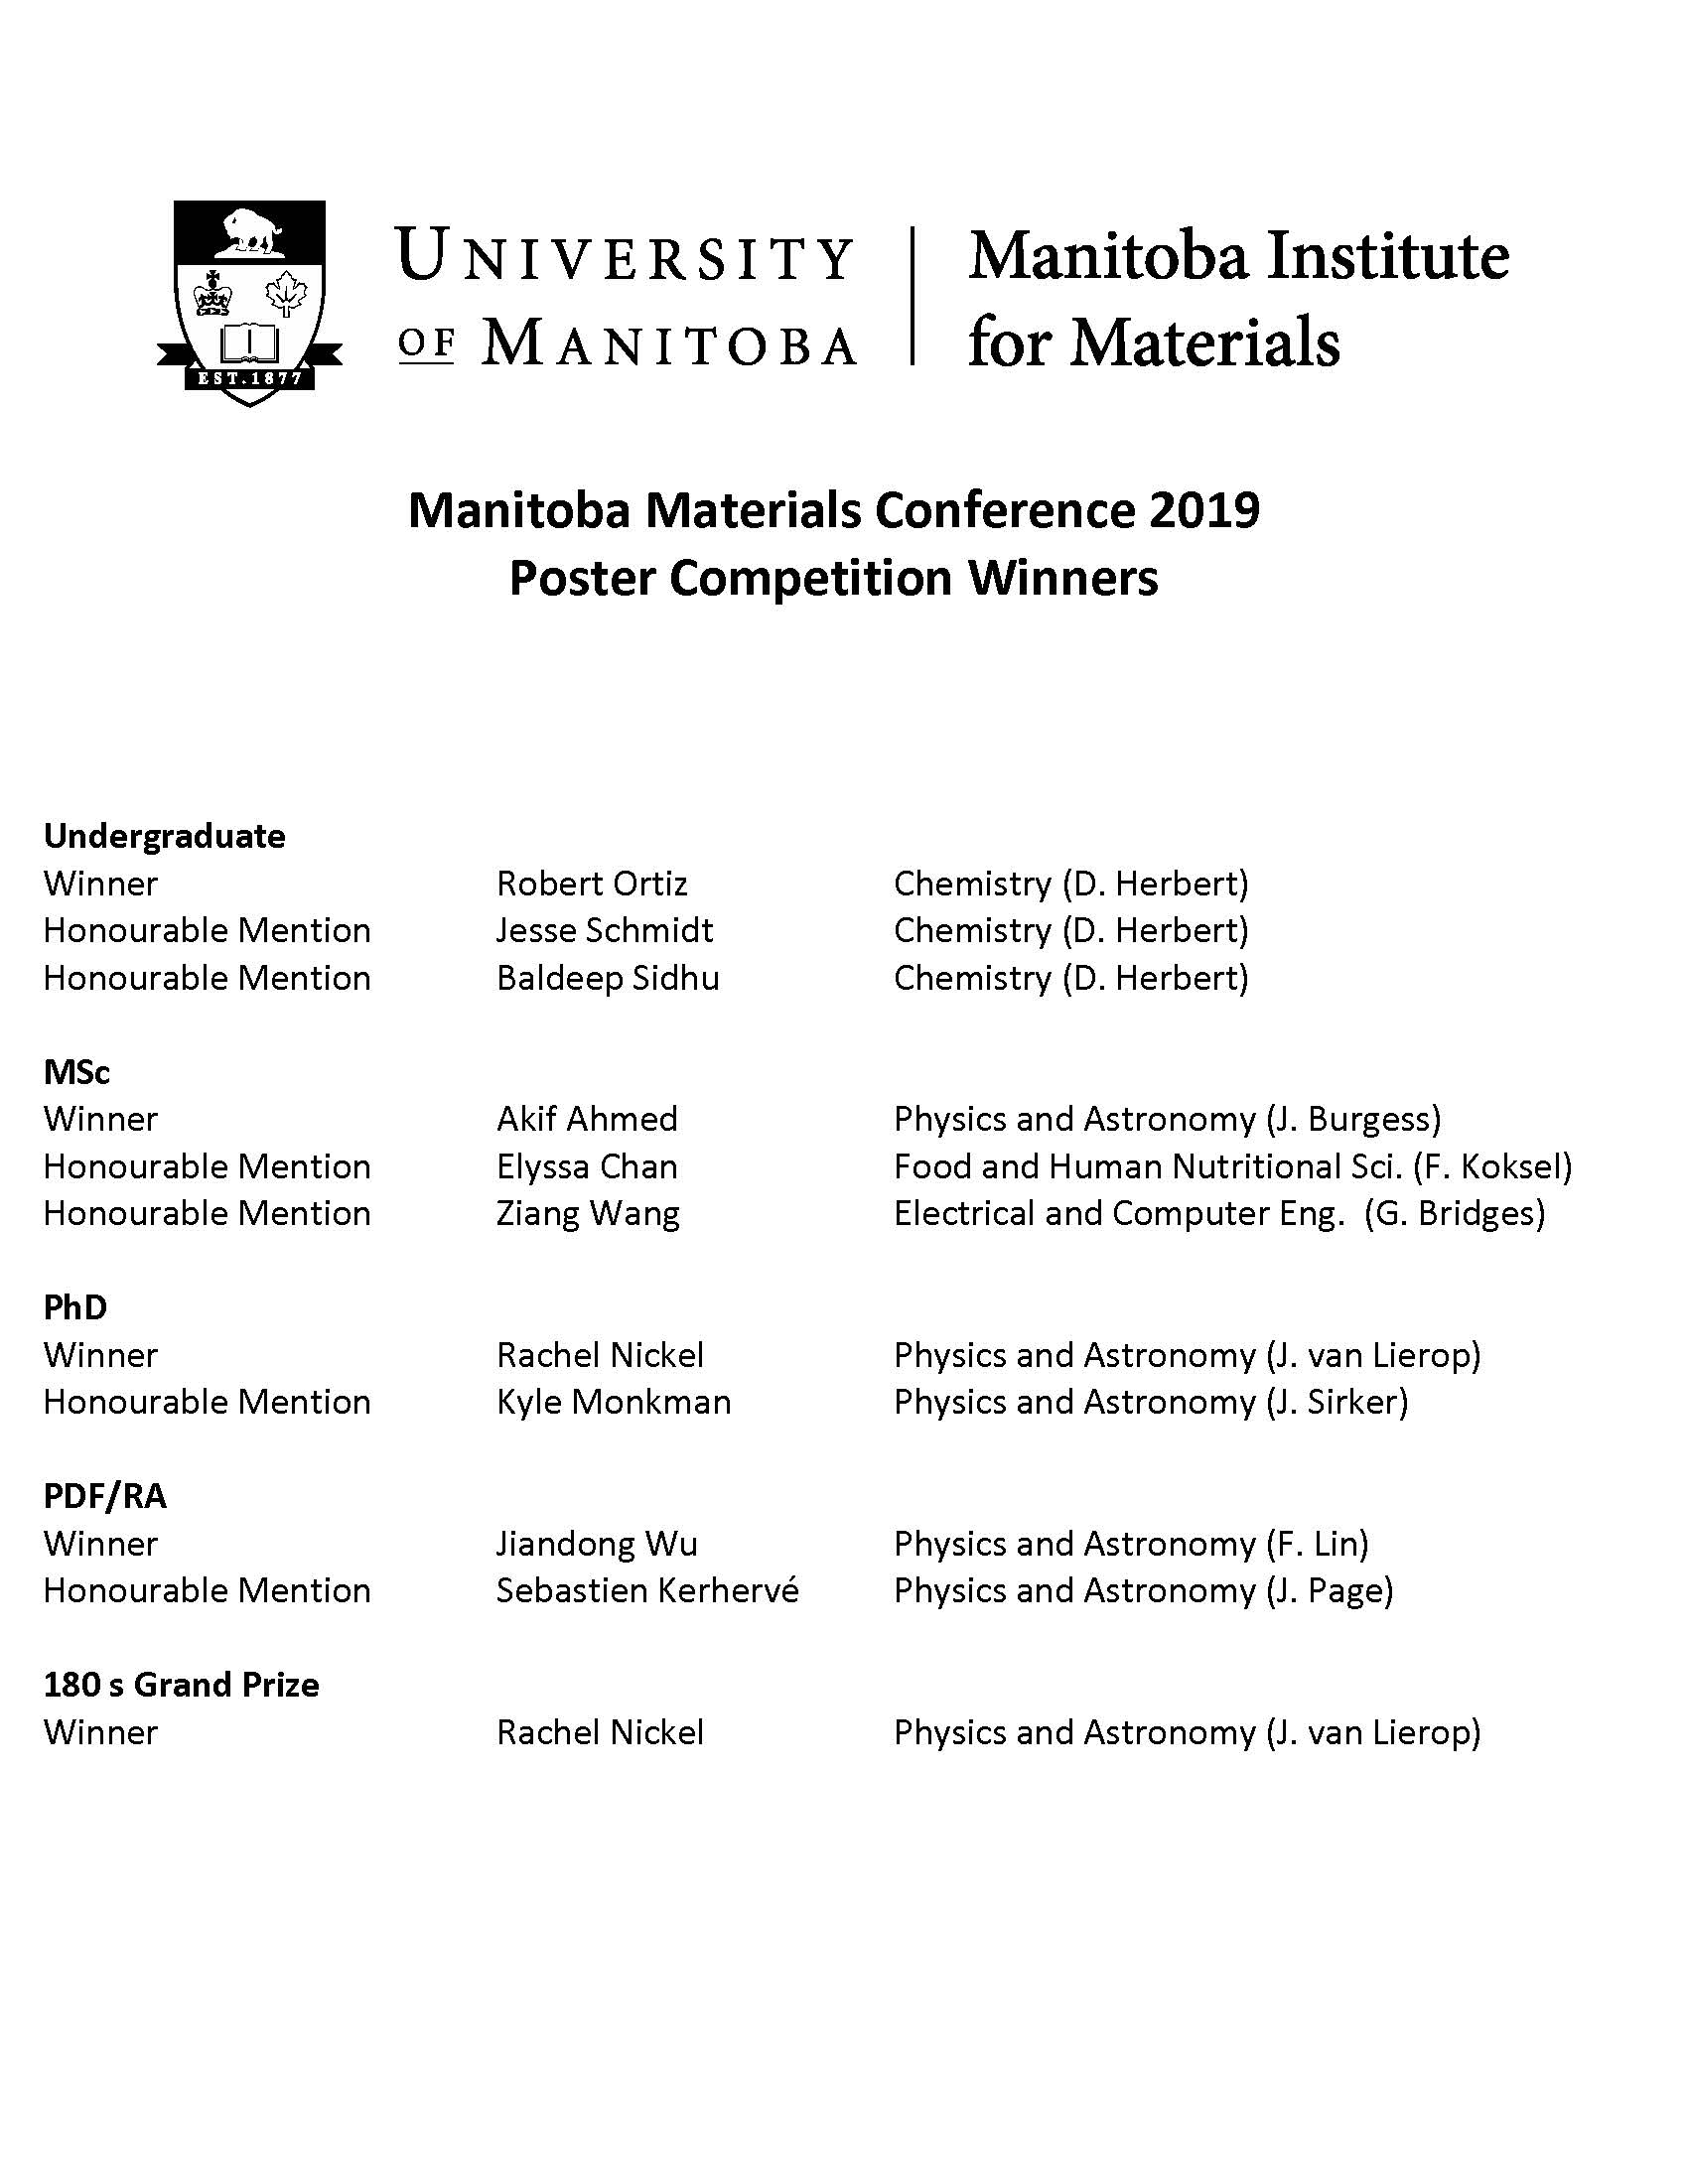 University of Manitoba - Manitoba Institute for Materials